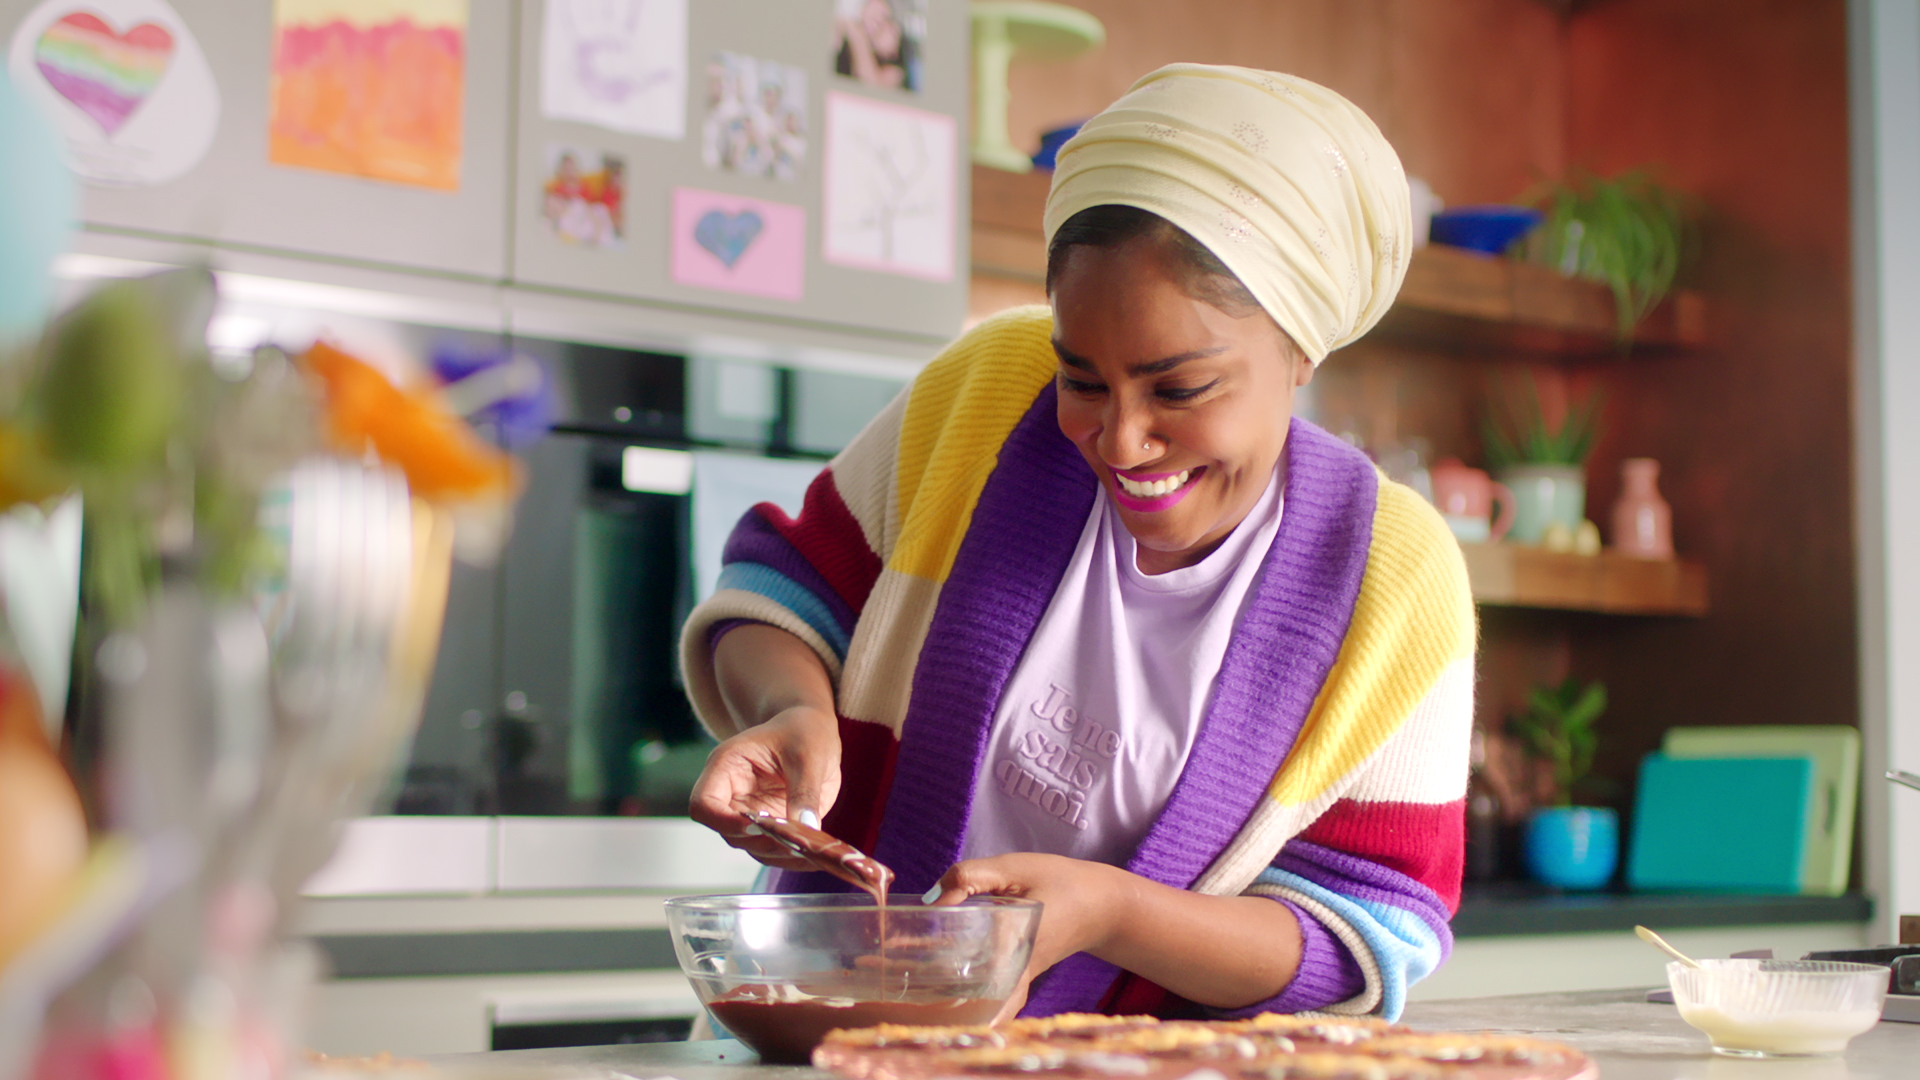 Beaming woman stirring a bowl of chocolate.